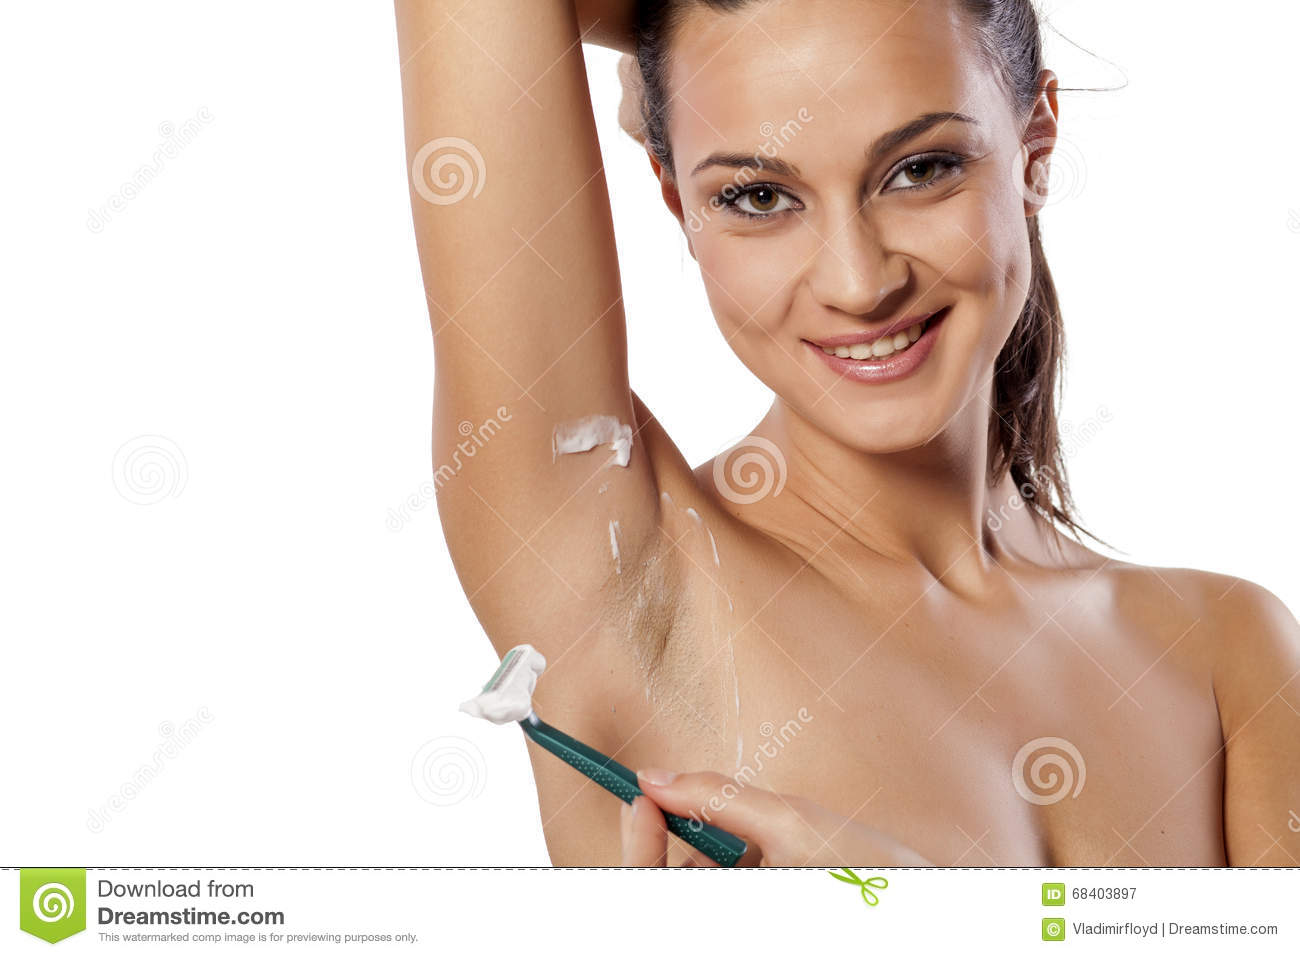 Shaved female armpit